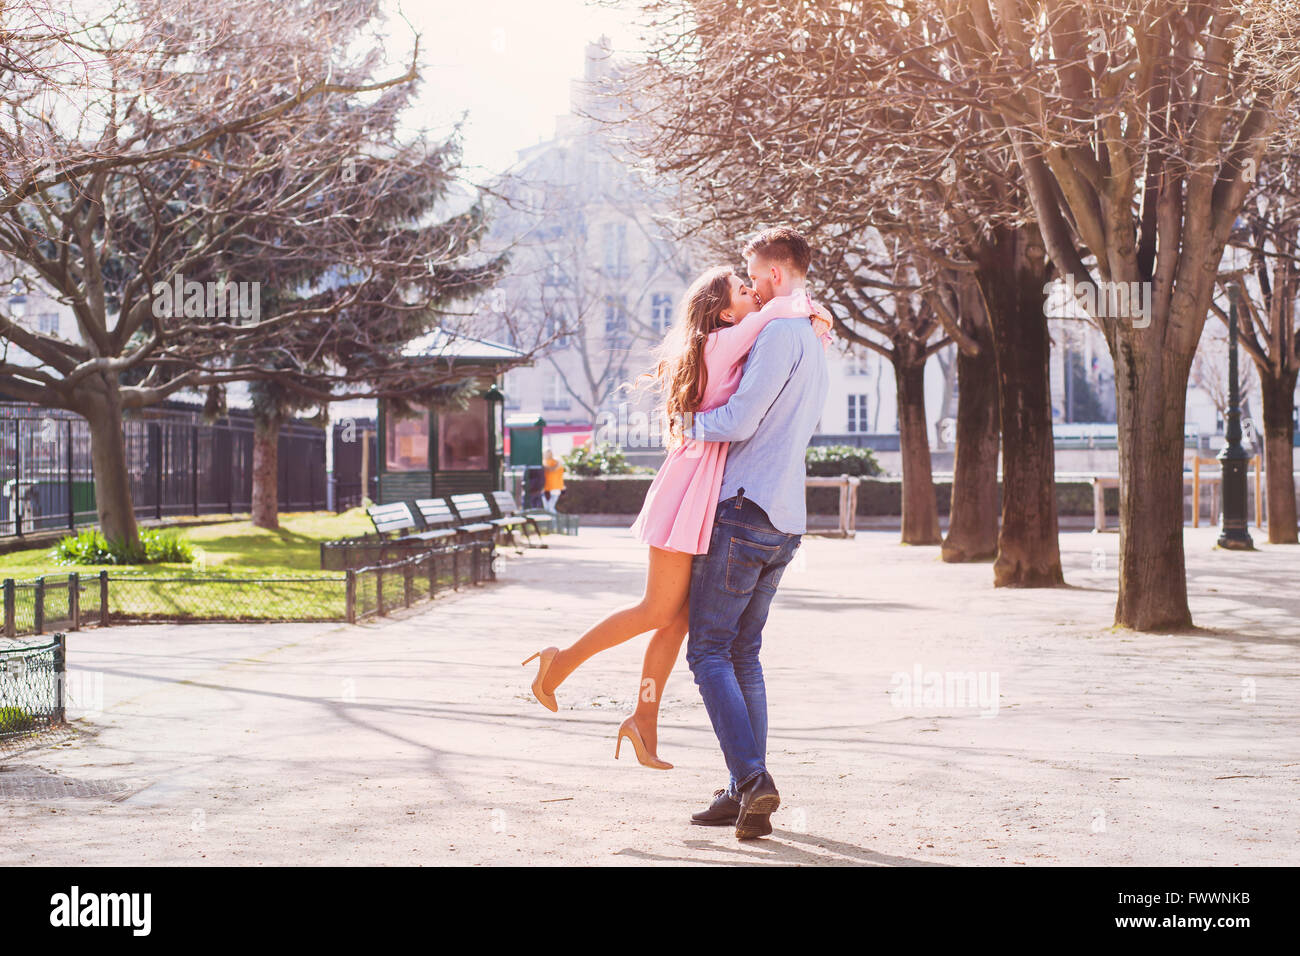 Dating, happy young girl hugging her boyfriend Photo Stock